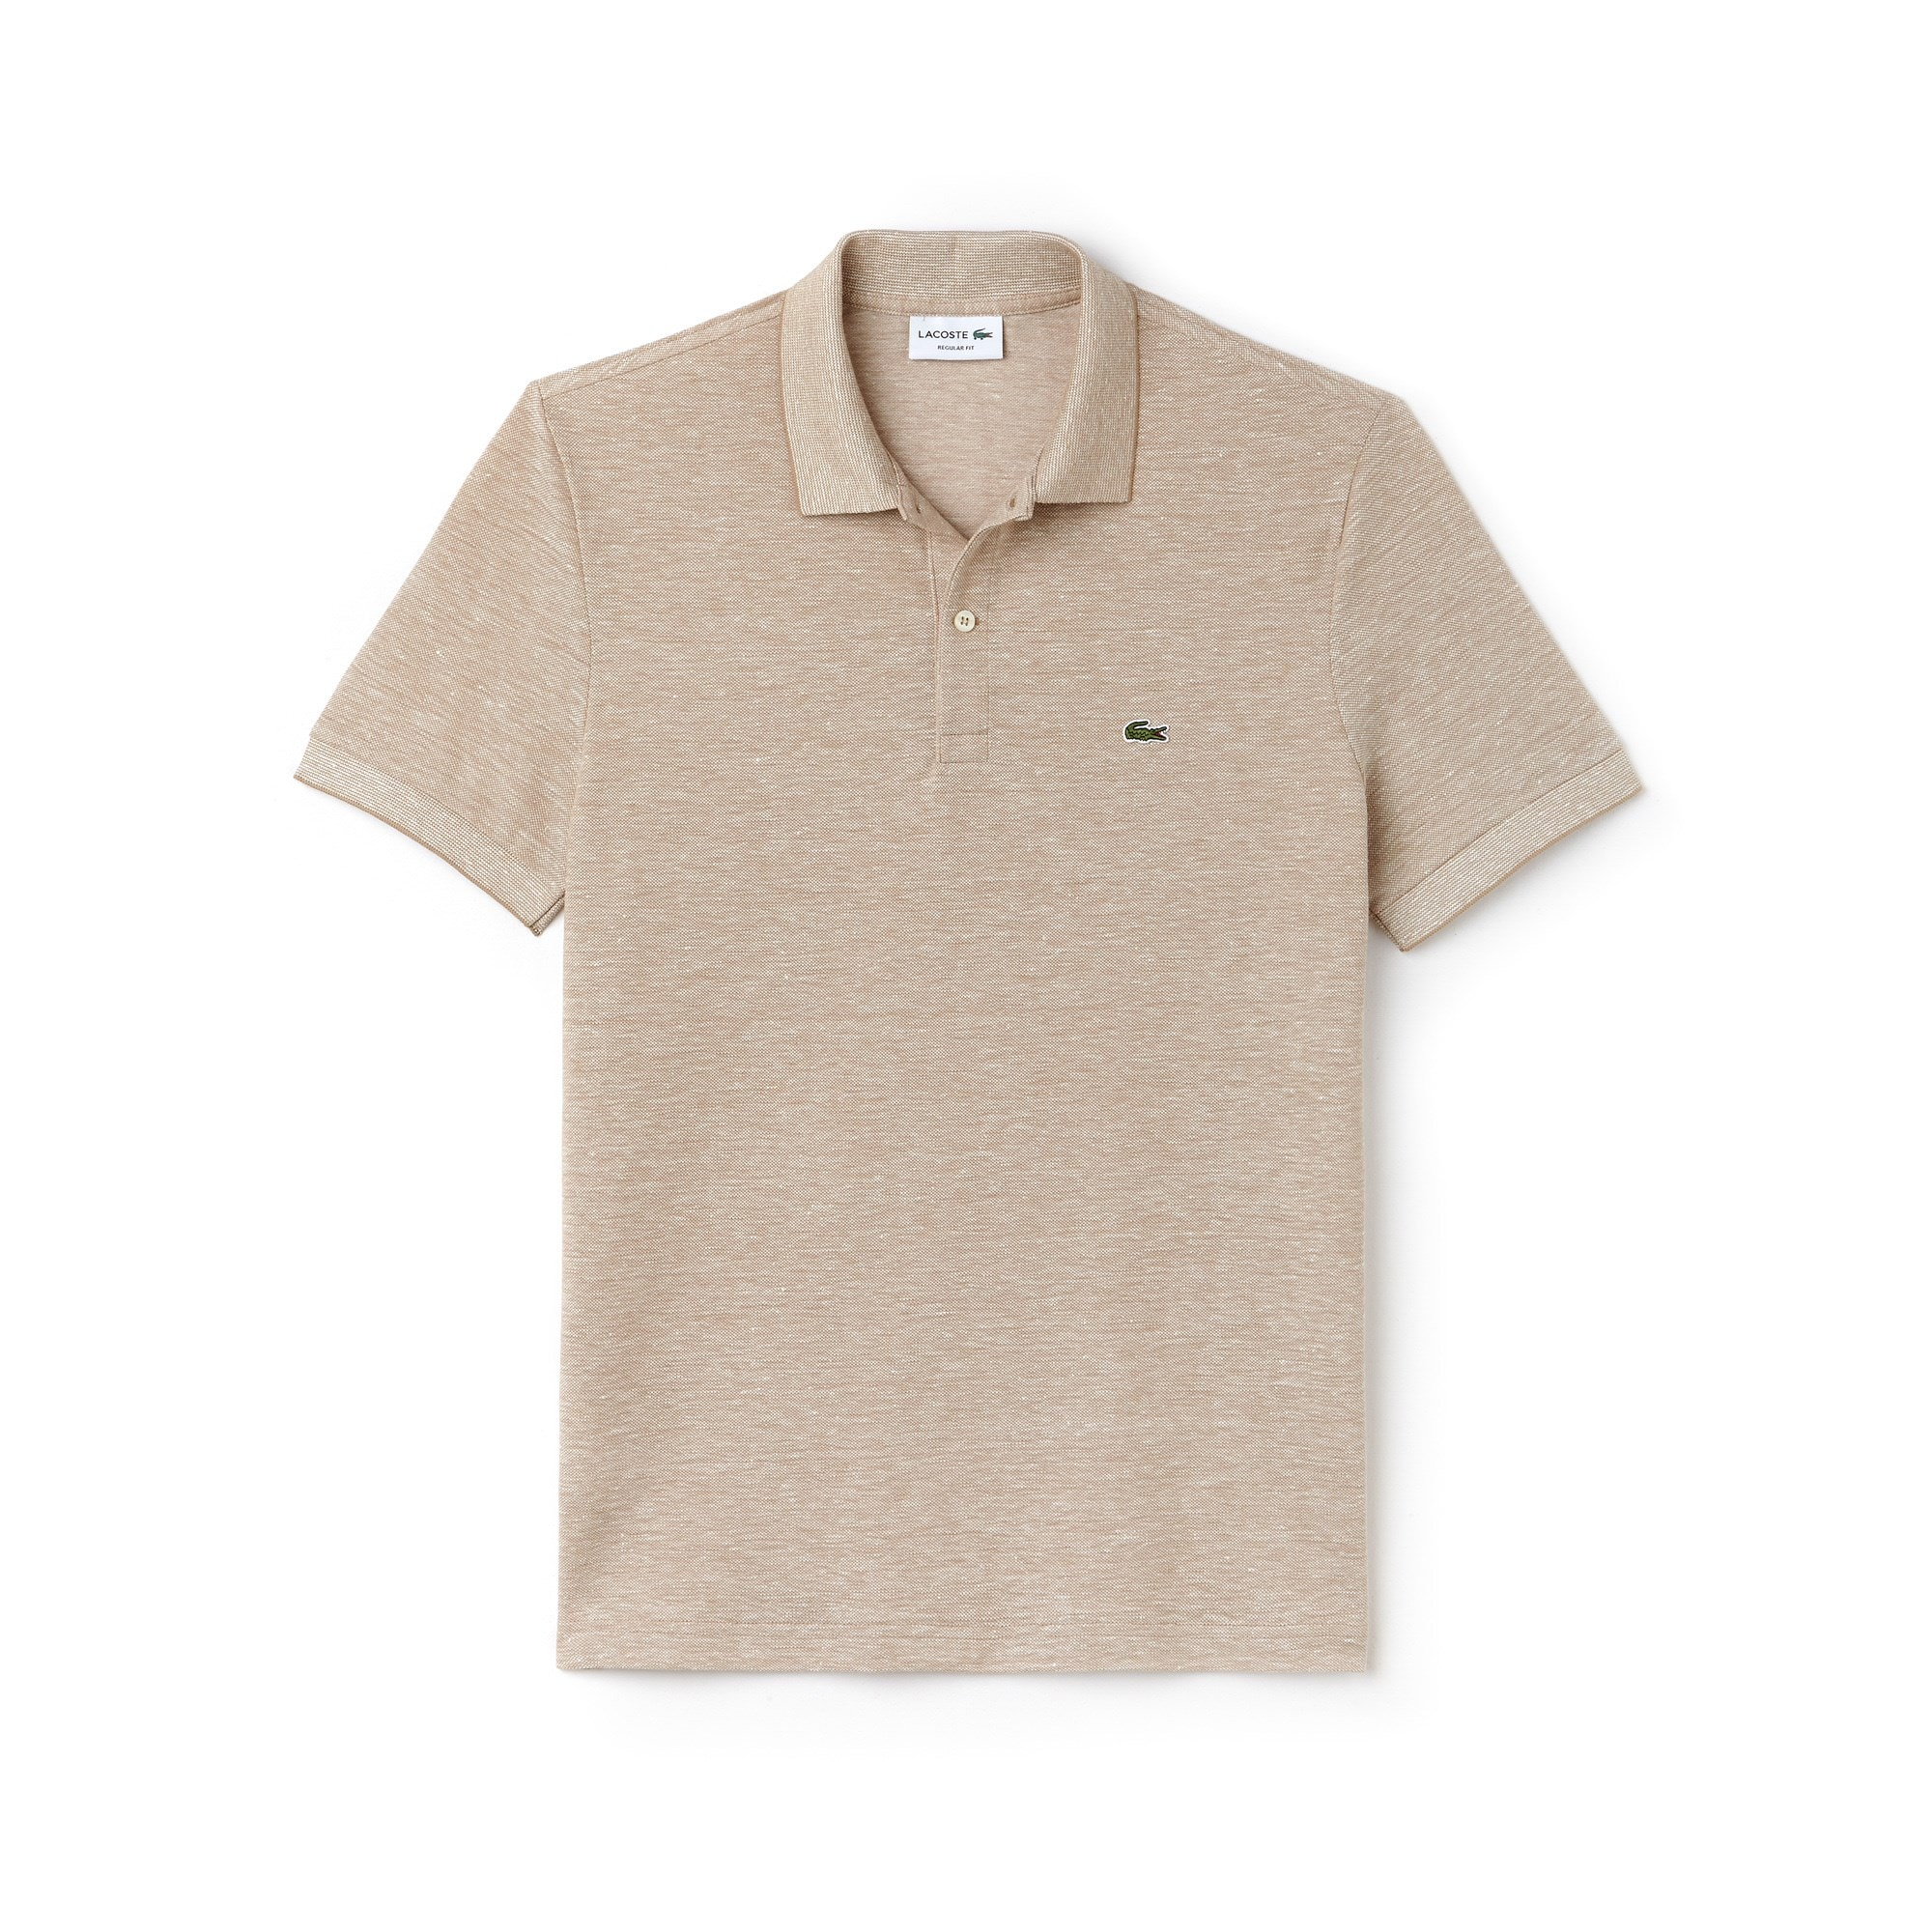 Polo regular fit Lacoste em piqué caviar texturado unicolor